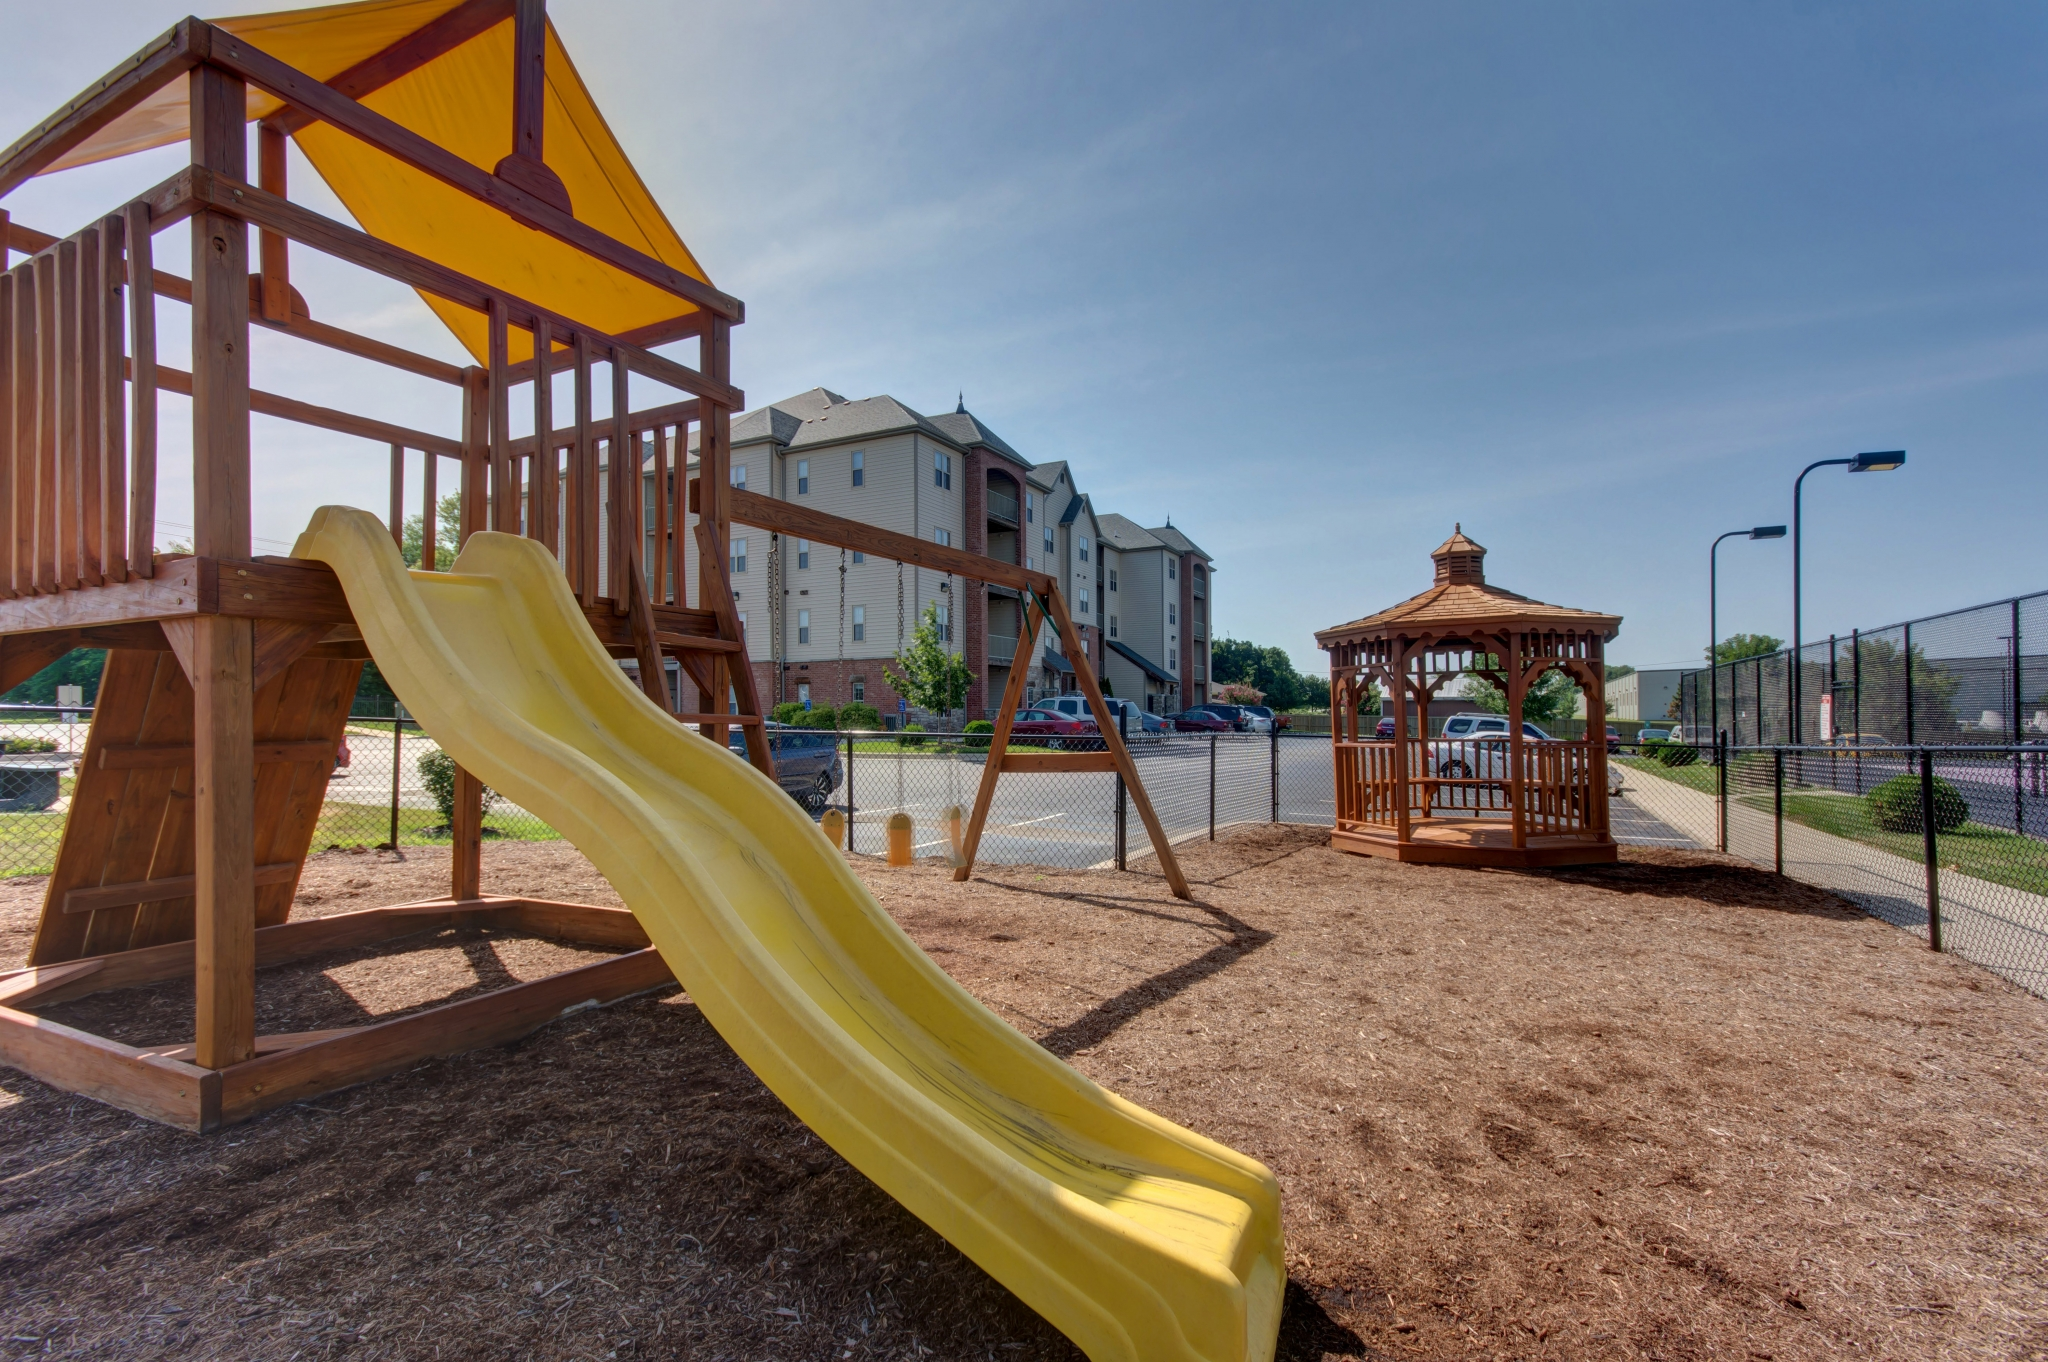 Coryell Courts Apartments amenity kids playground with slide and swing